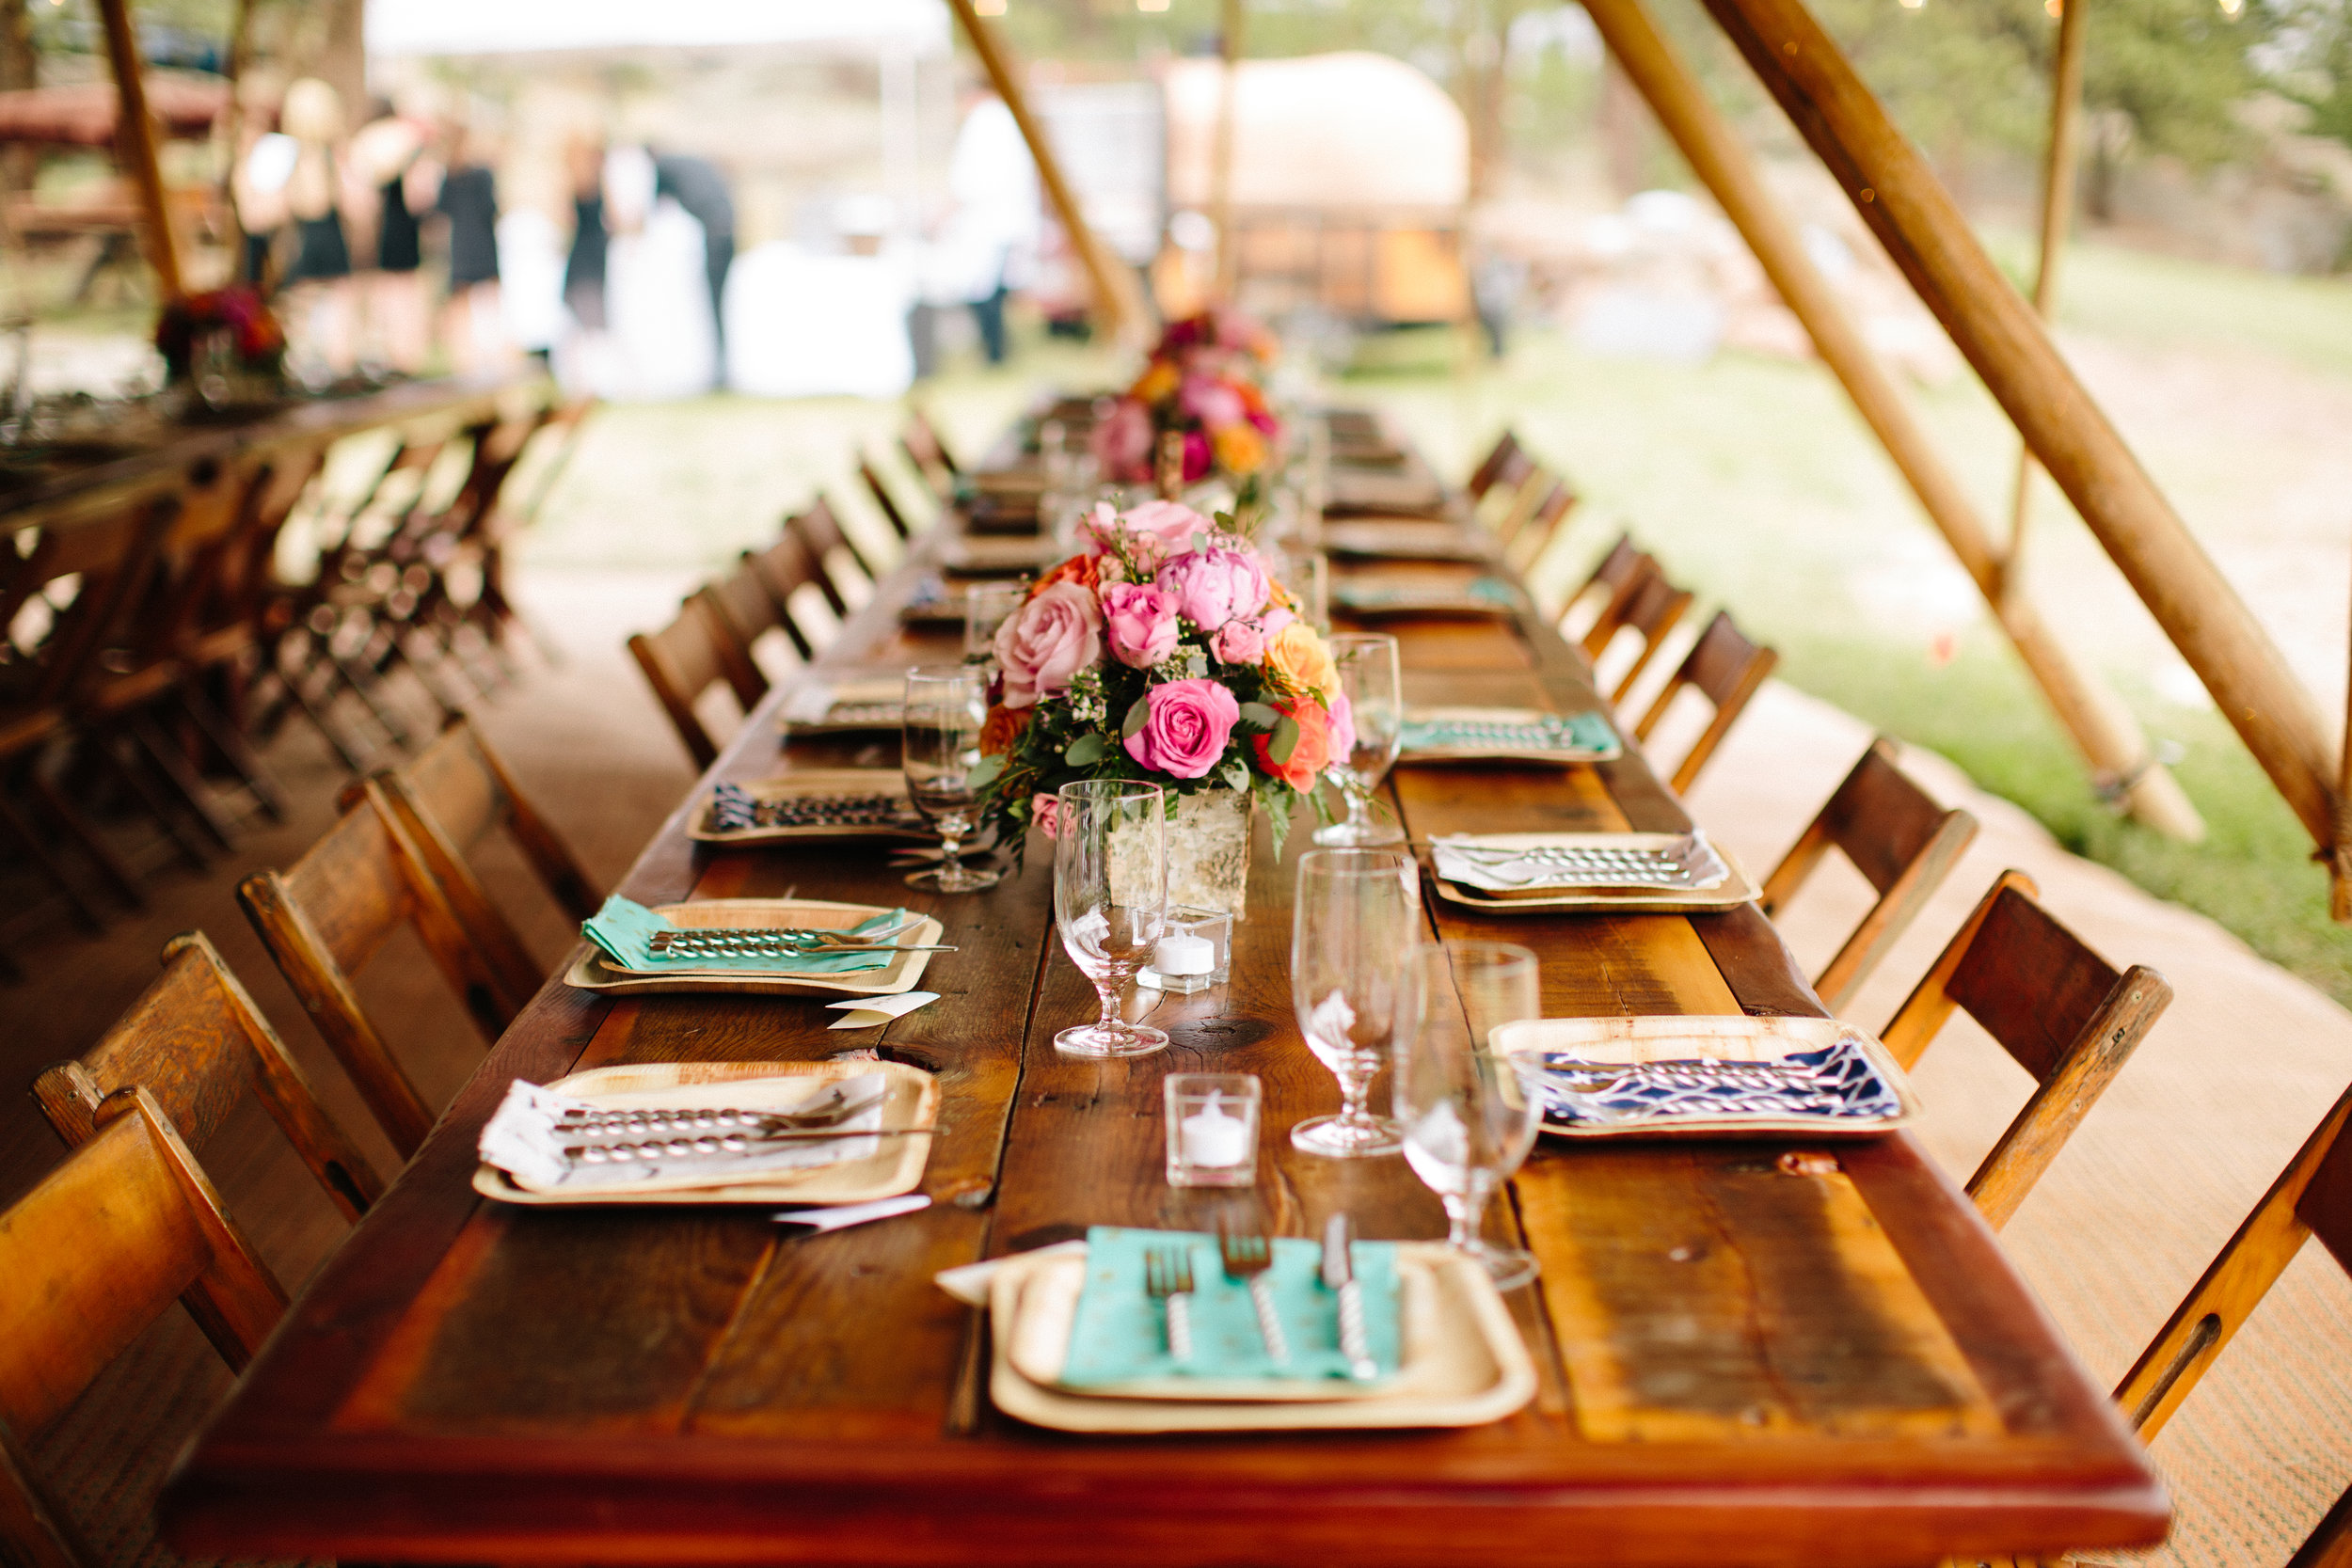 Rustic wood tables and chairs from The Harvest Table Company  Rentals from Colorado Party Rentals  Flowers from Evanscraft Designs